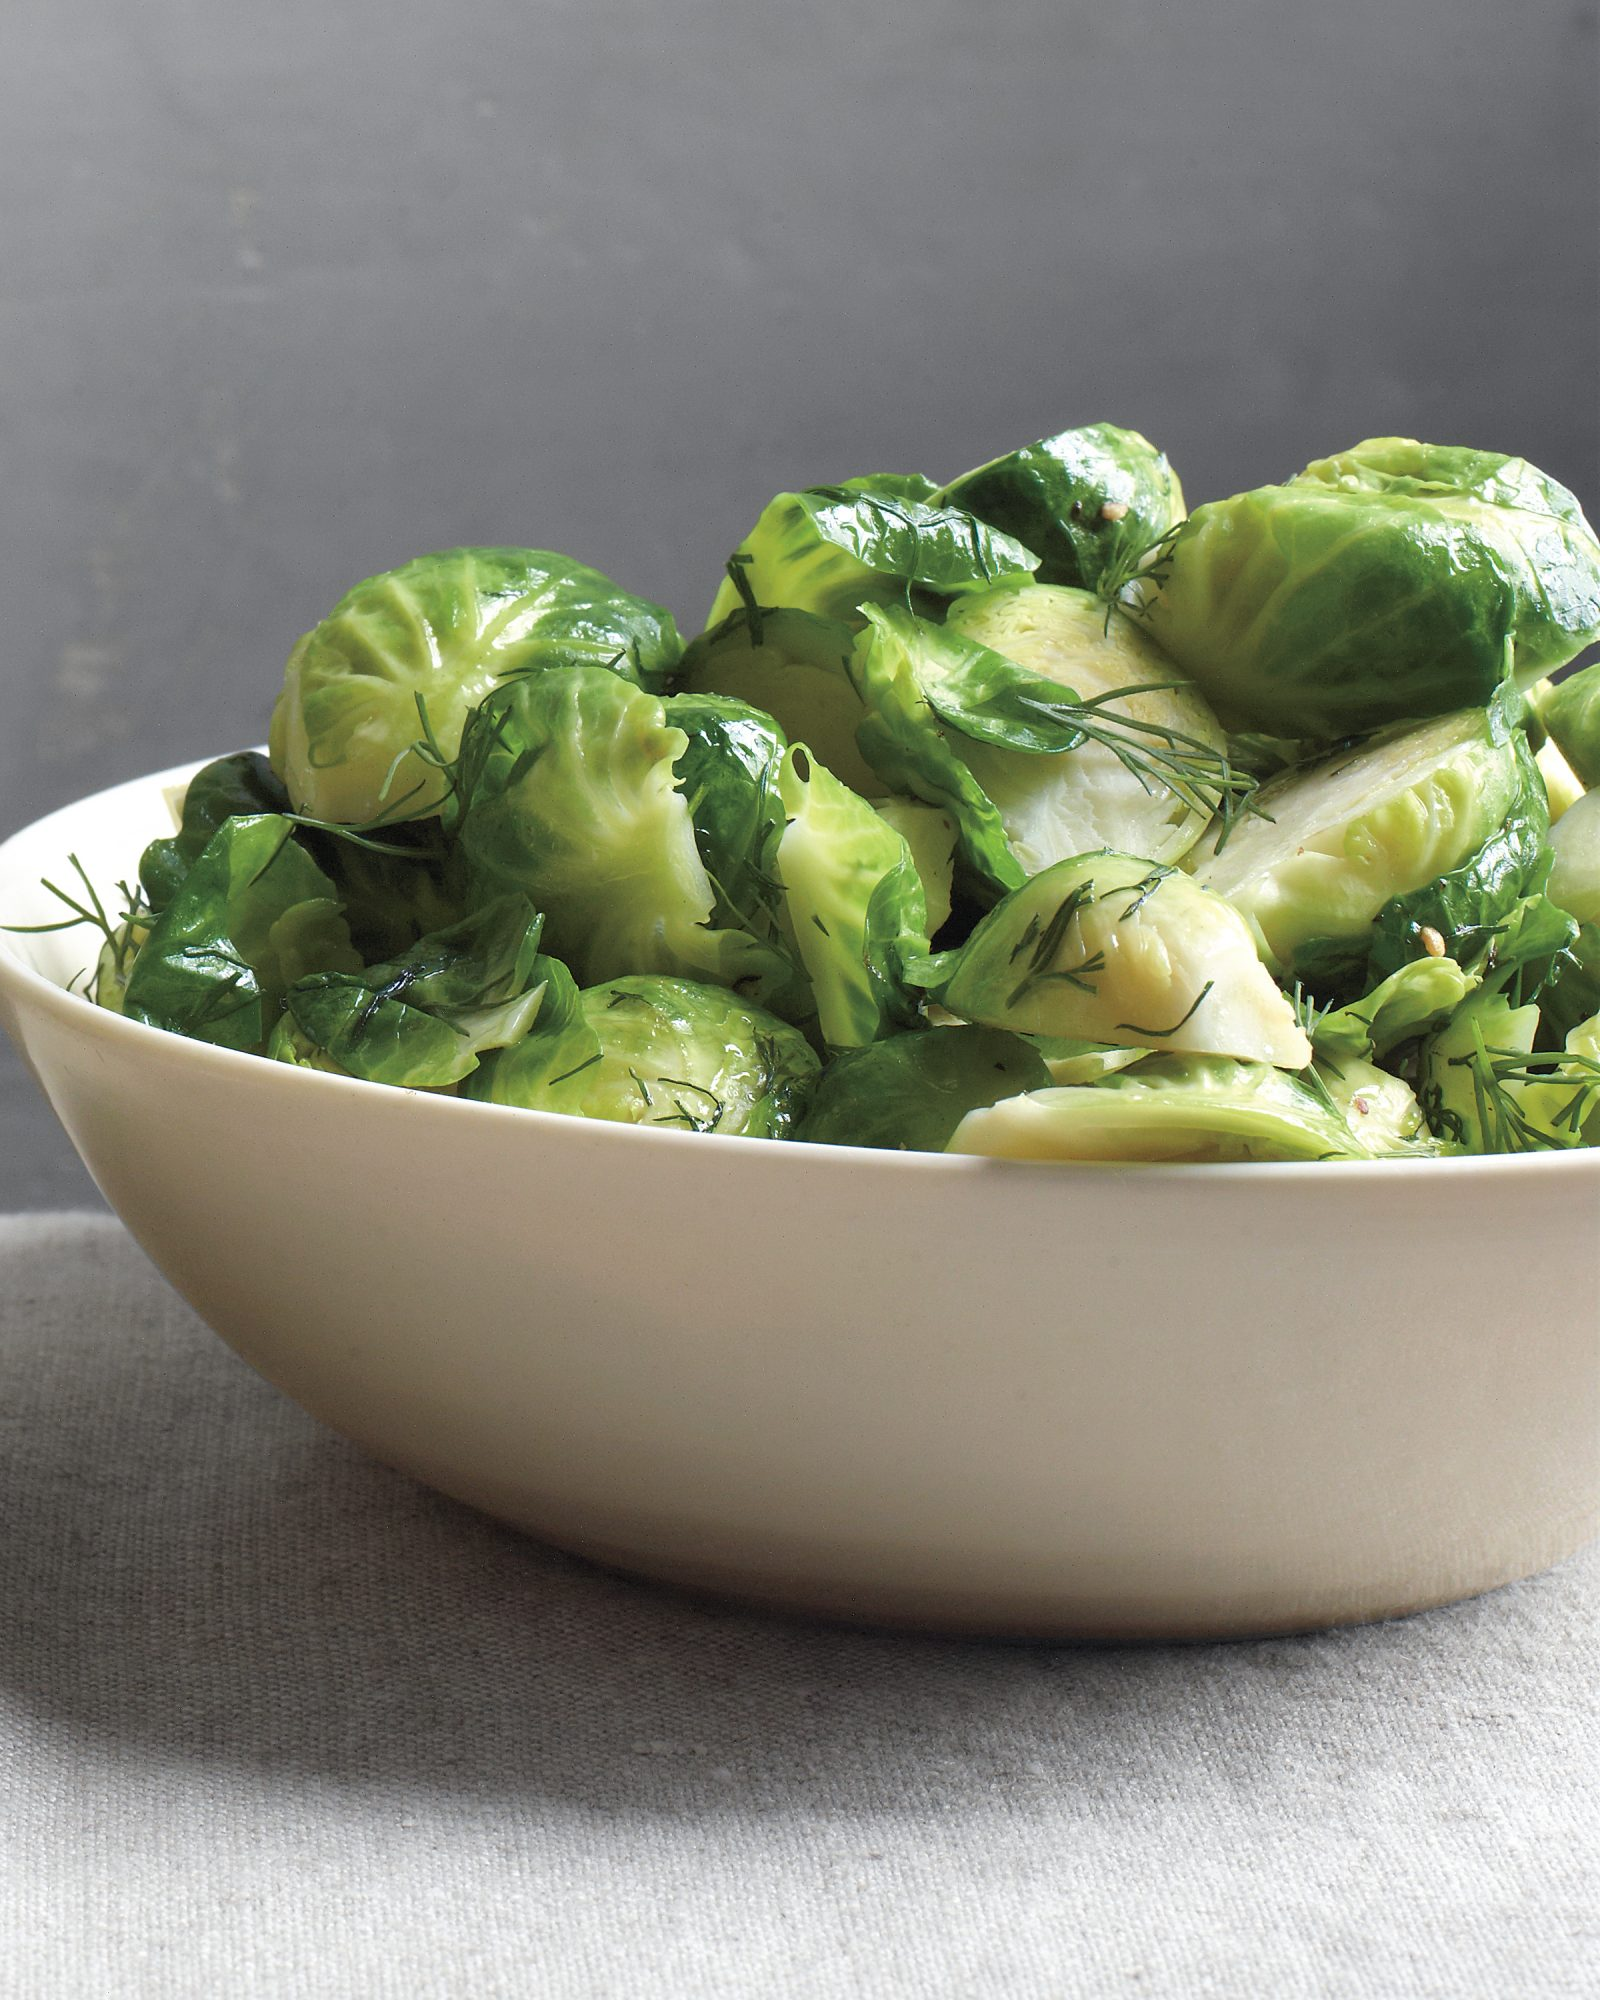 Brussels Sprouts with Dill Butter